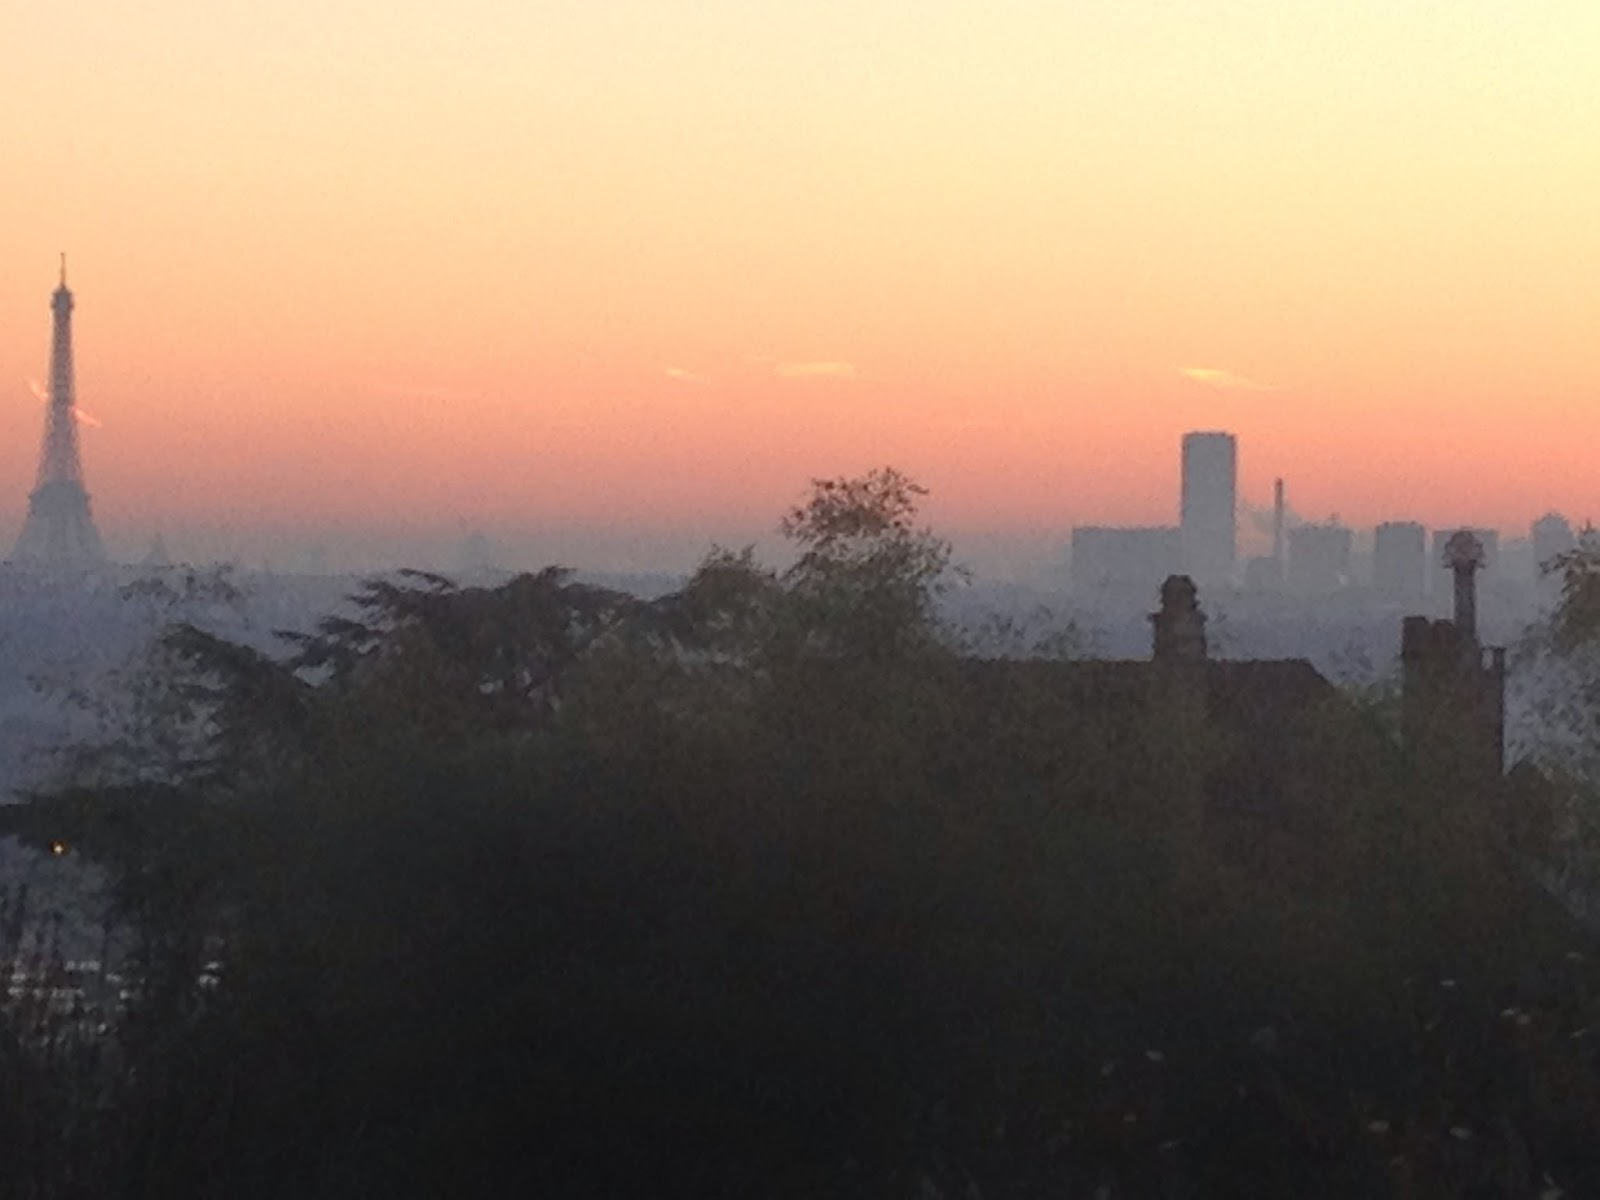 Sunrise over Paris, 1 January 2015